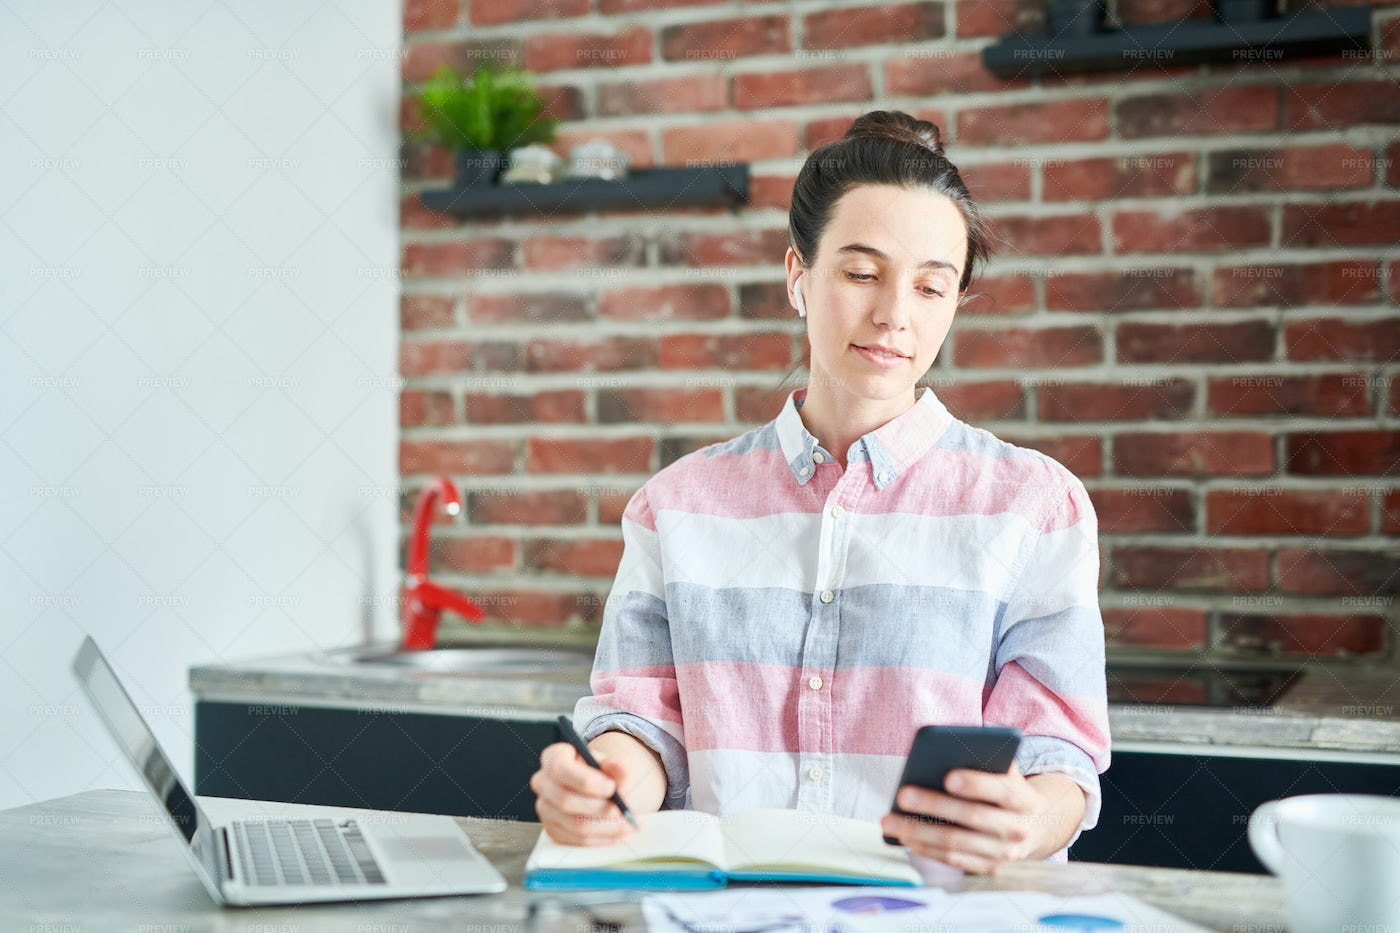 Modern Young Woman Working From...: Stock Photos